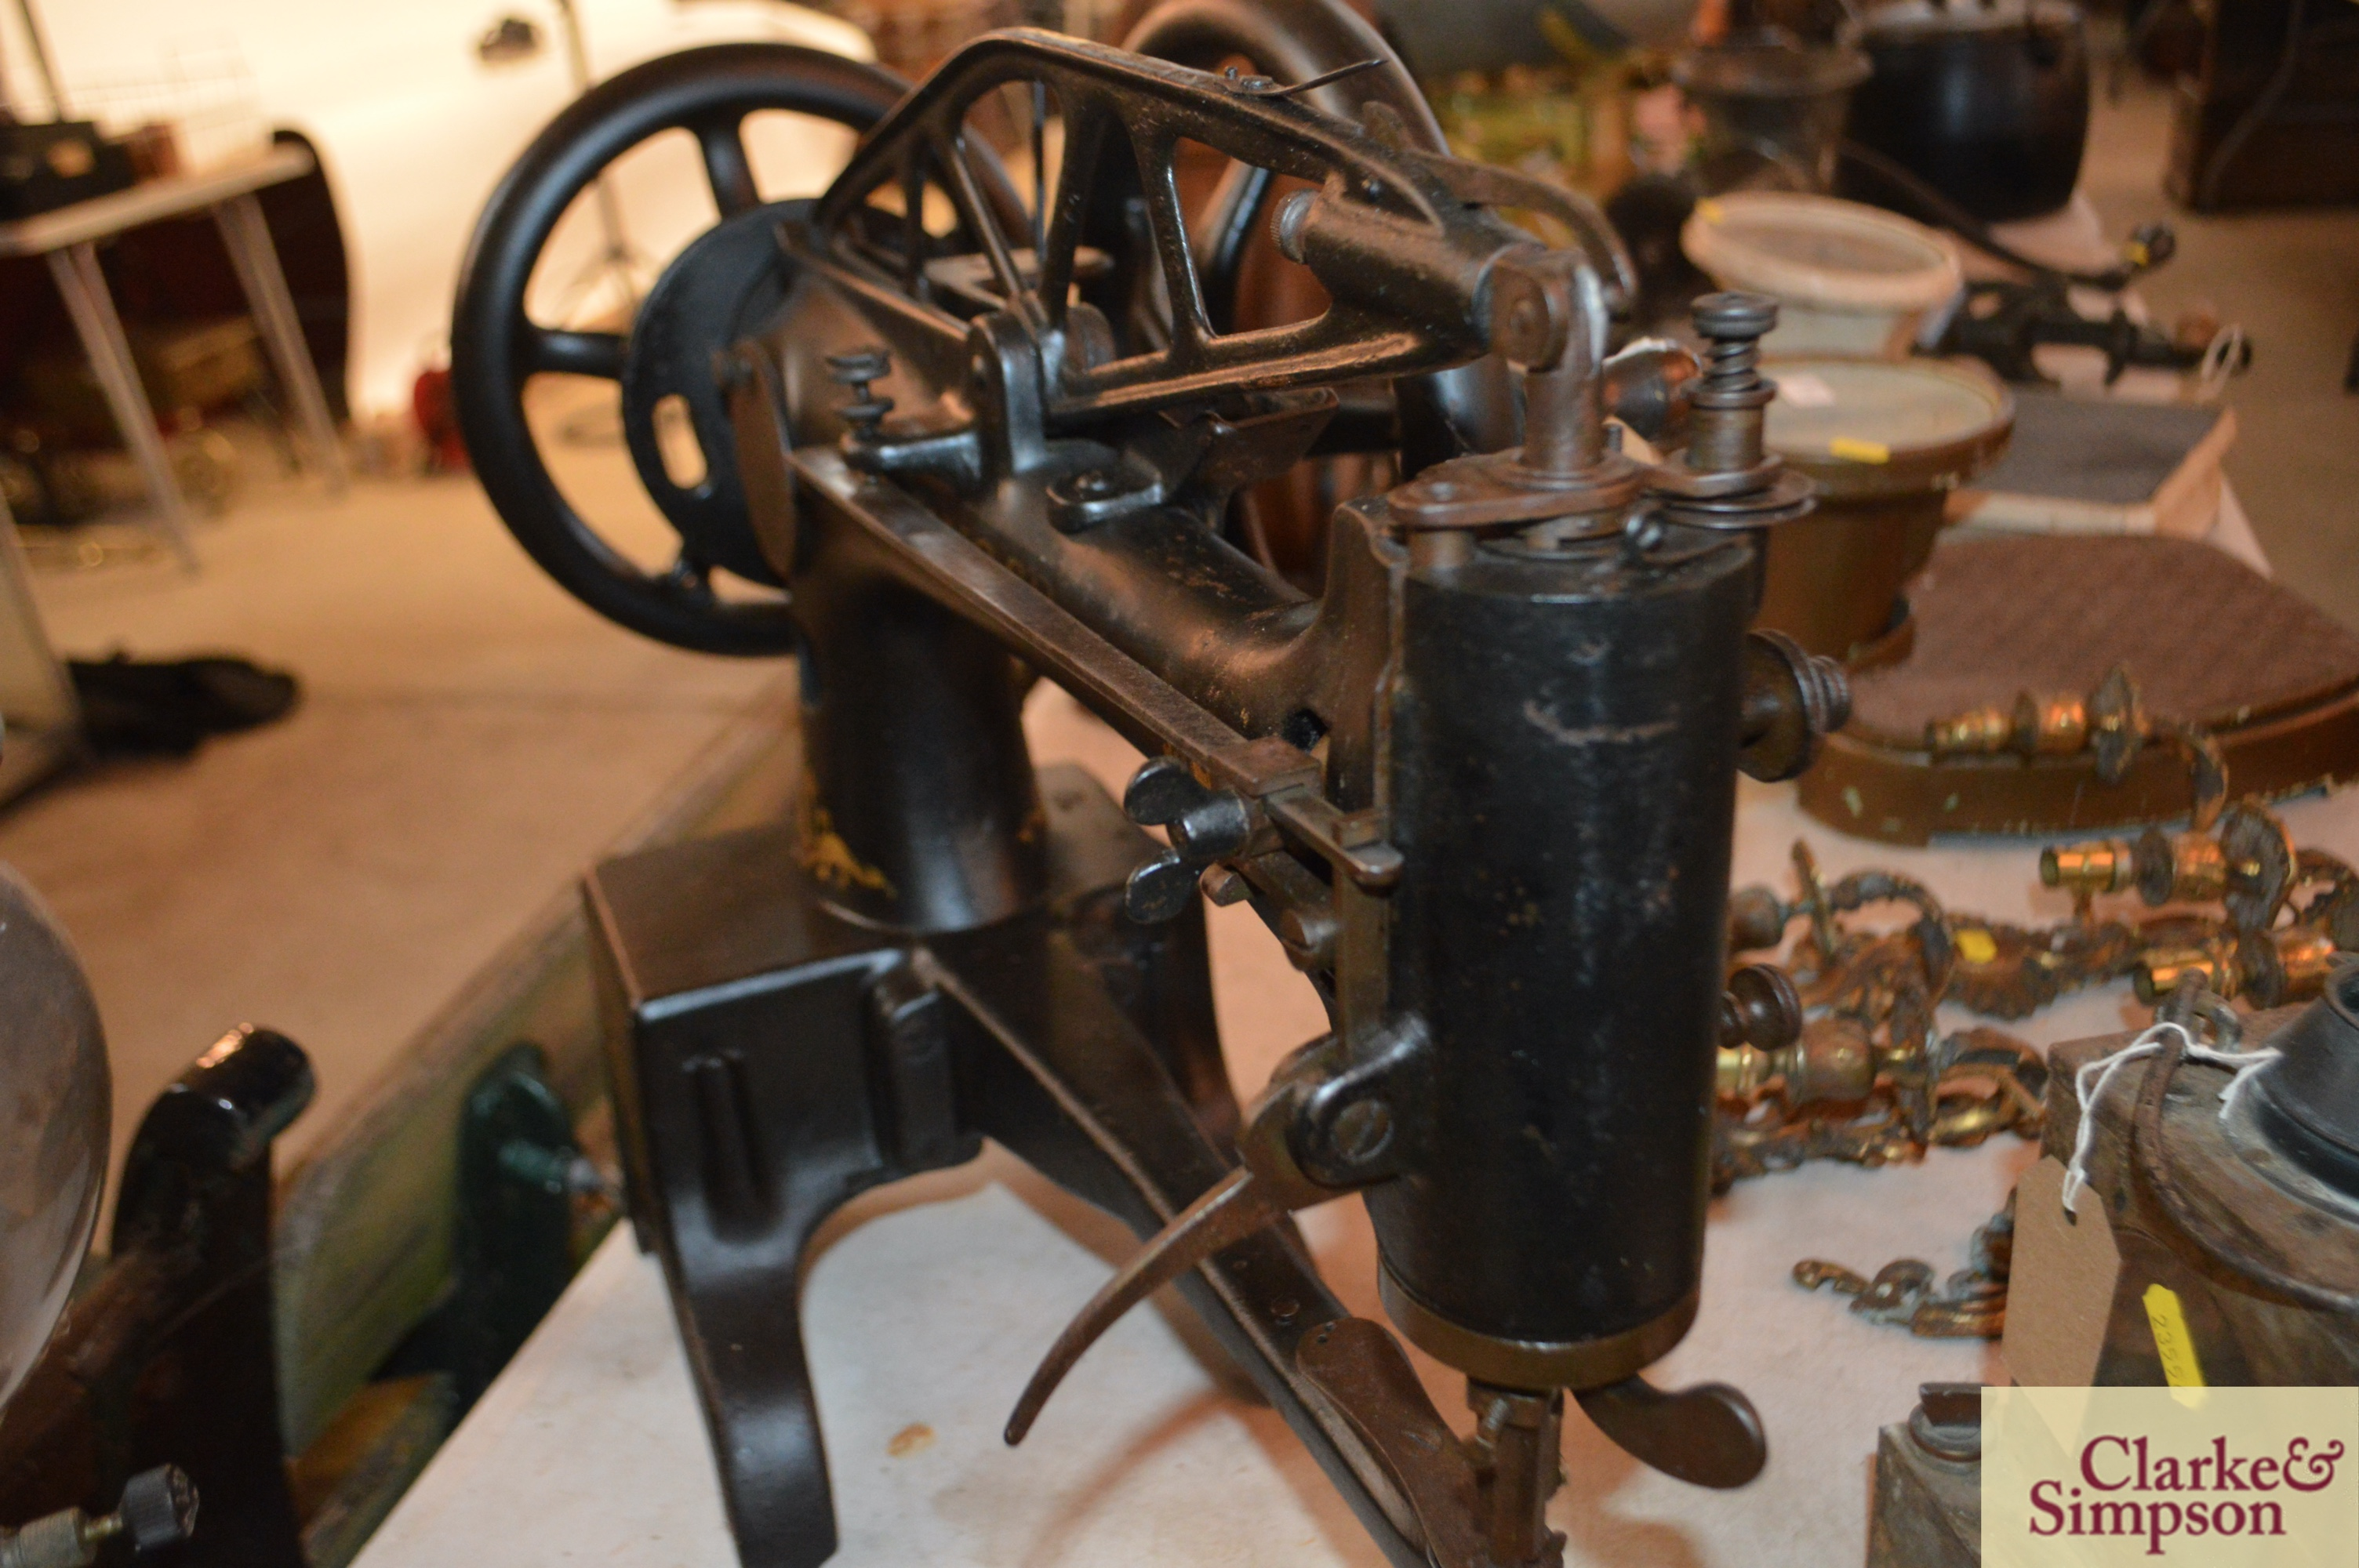 A Singer No.29K15 heavy duty patcher hand or belt - Image 7 of 9